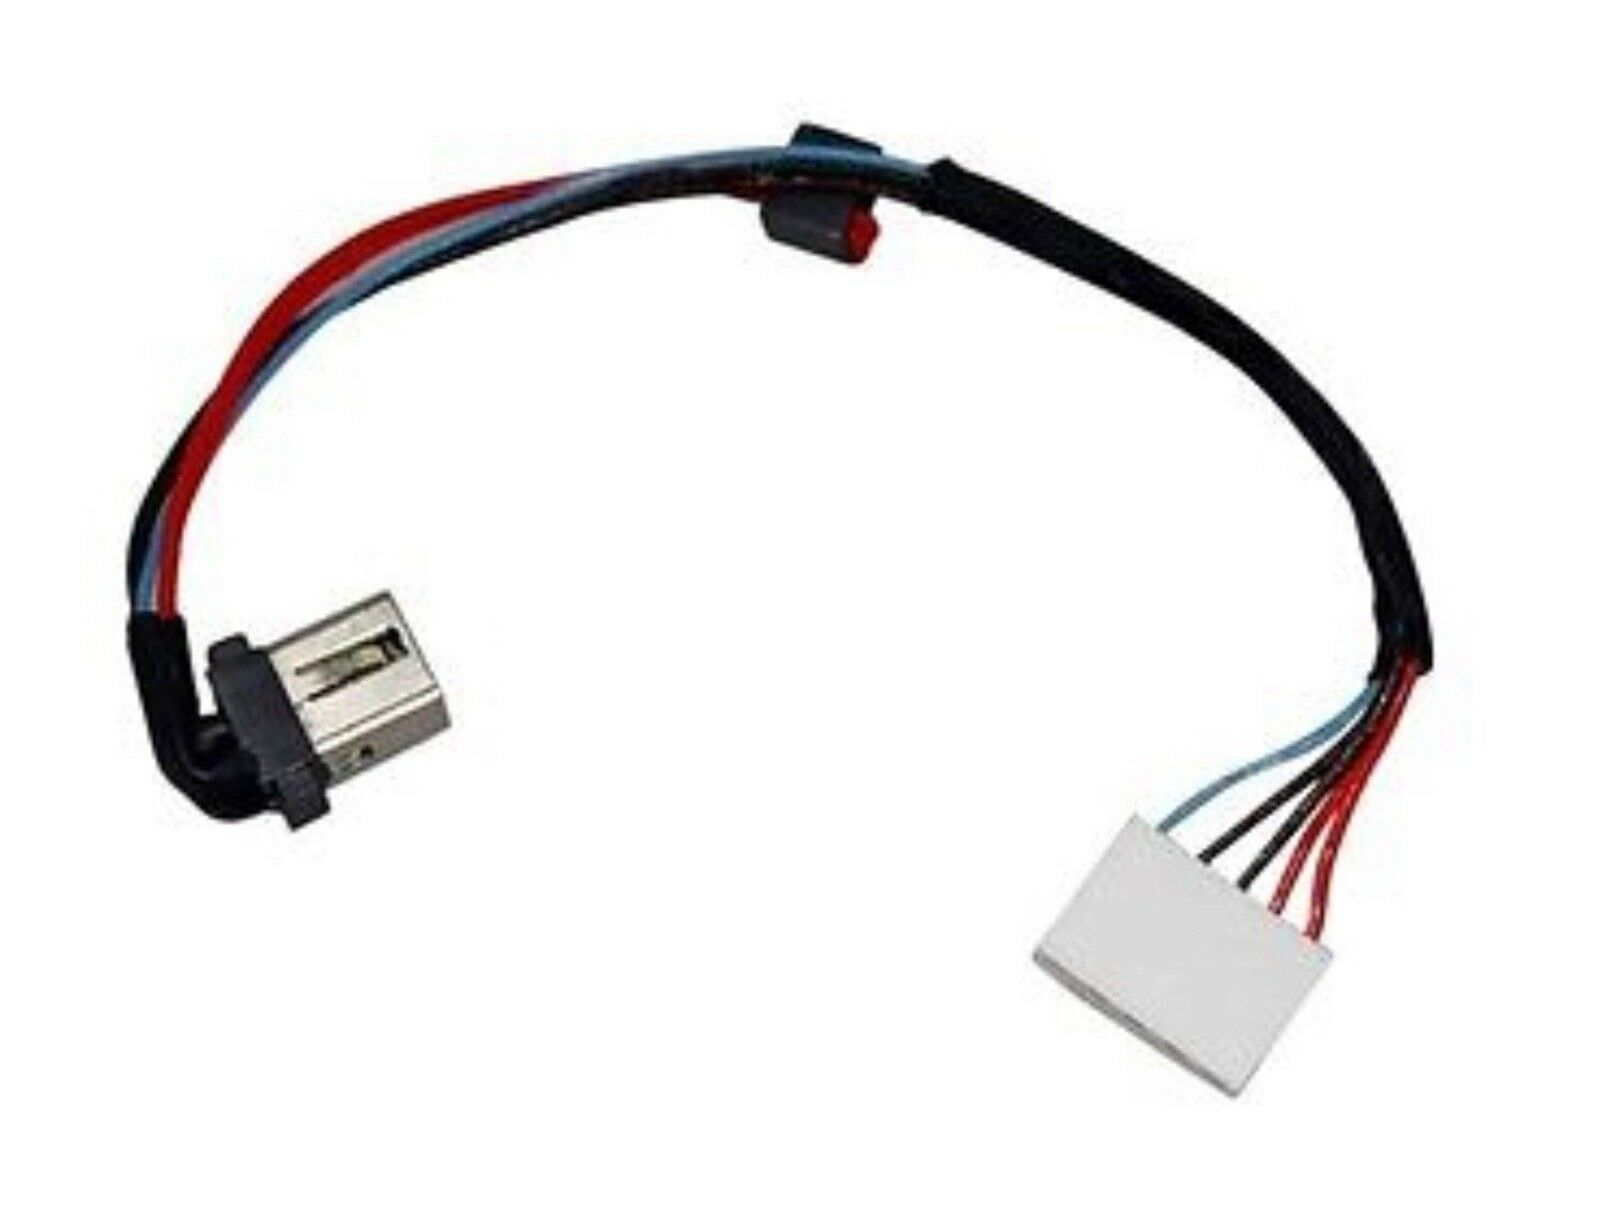 Acer ChromeBook C810 13 CB5-311 DC30100TB00 50.MPRN2.003 DC POWER JACK Cable sk